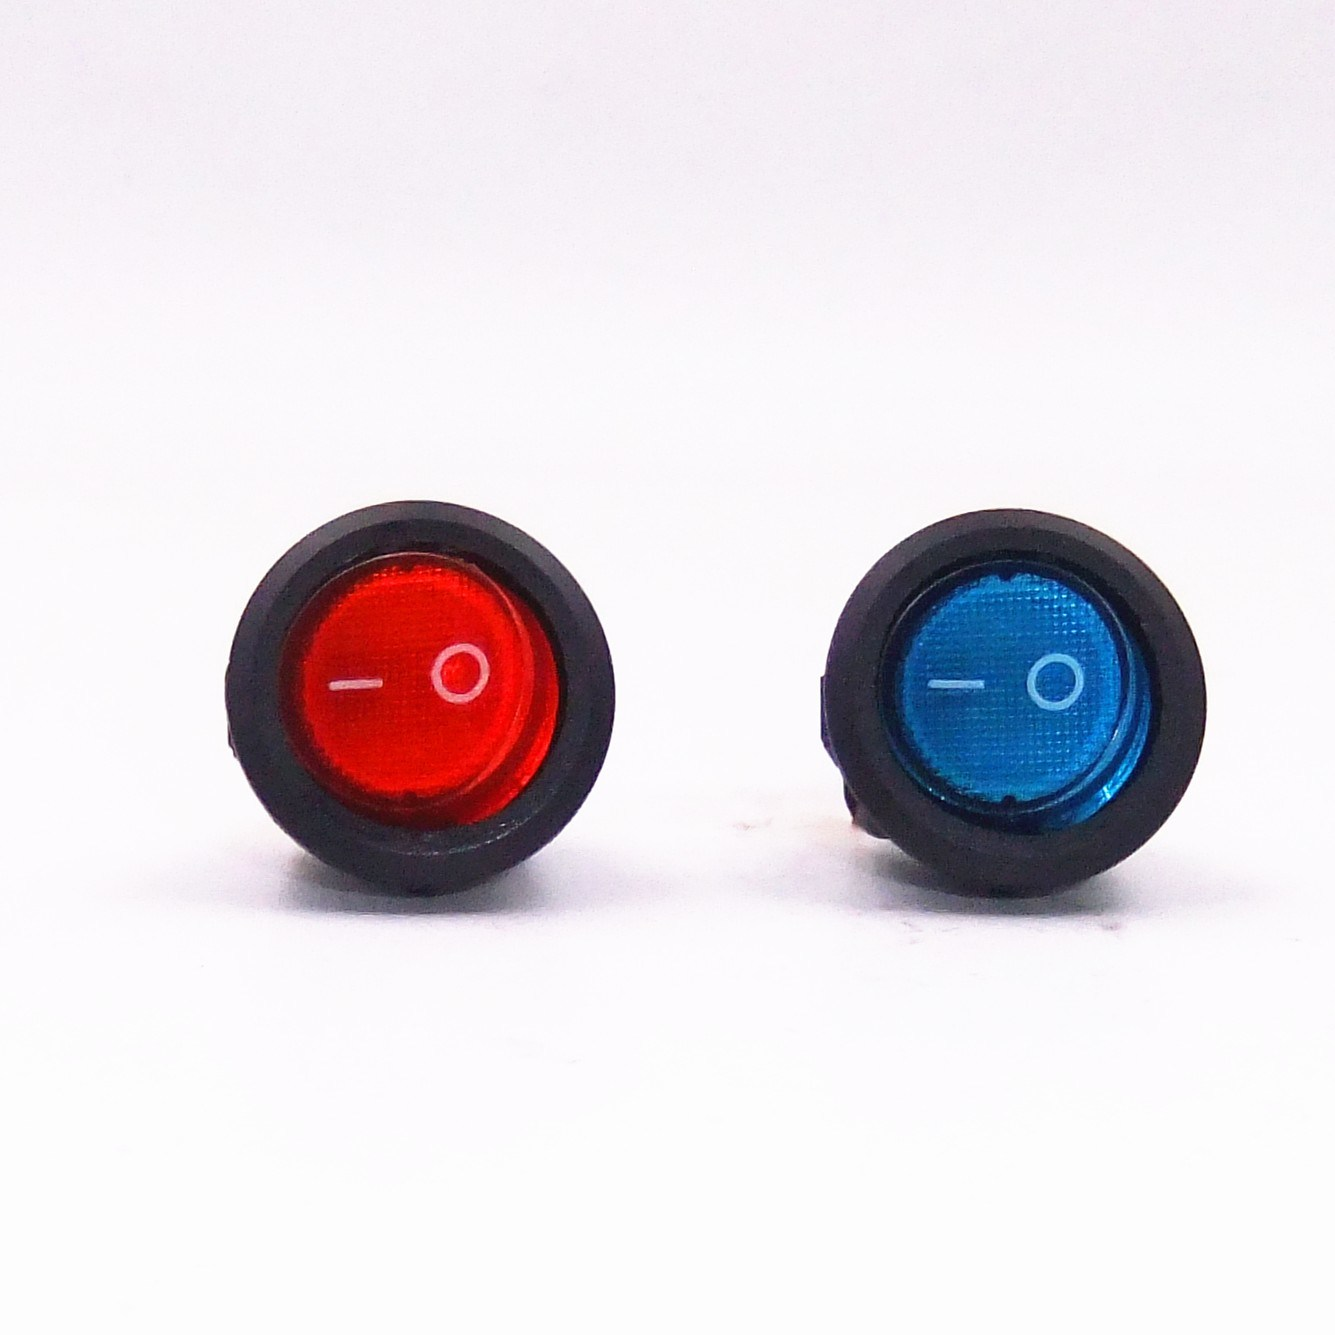 China Waterproof Push Button Switch On Off Spst 3 Pins With Led Switches Indicator Light Rocker